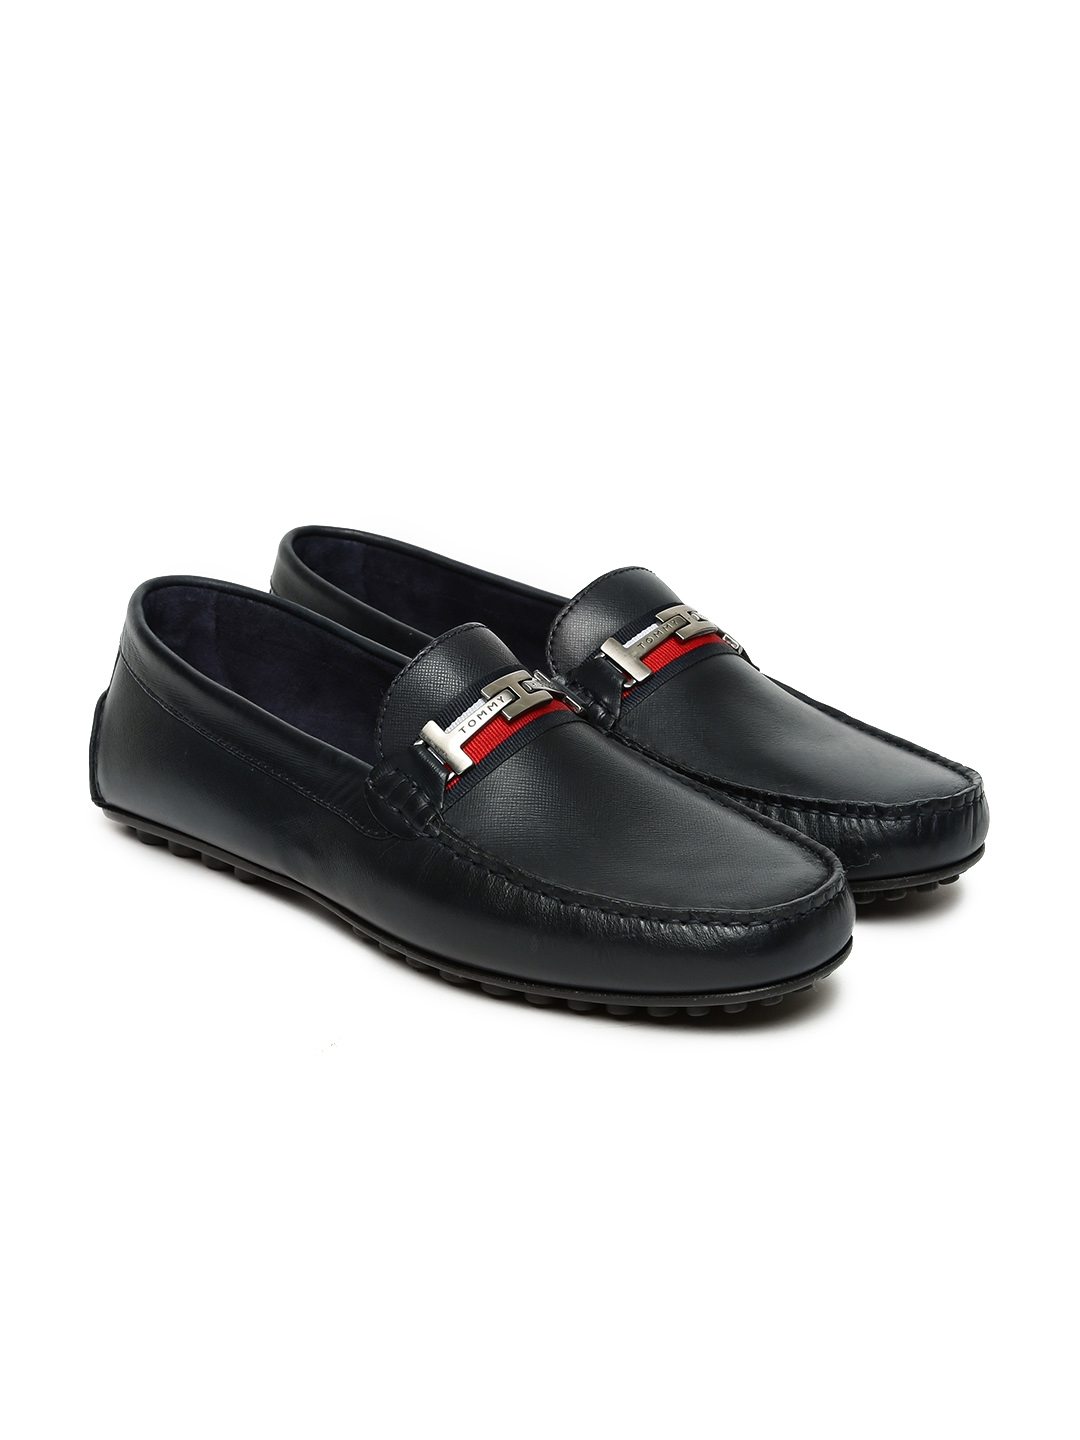 257ae7fa87bf0 Buy Tommy Hilfiger Men Navy Blue Leather Loafers - Casual Shoes for ...